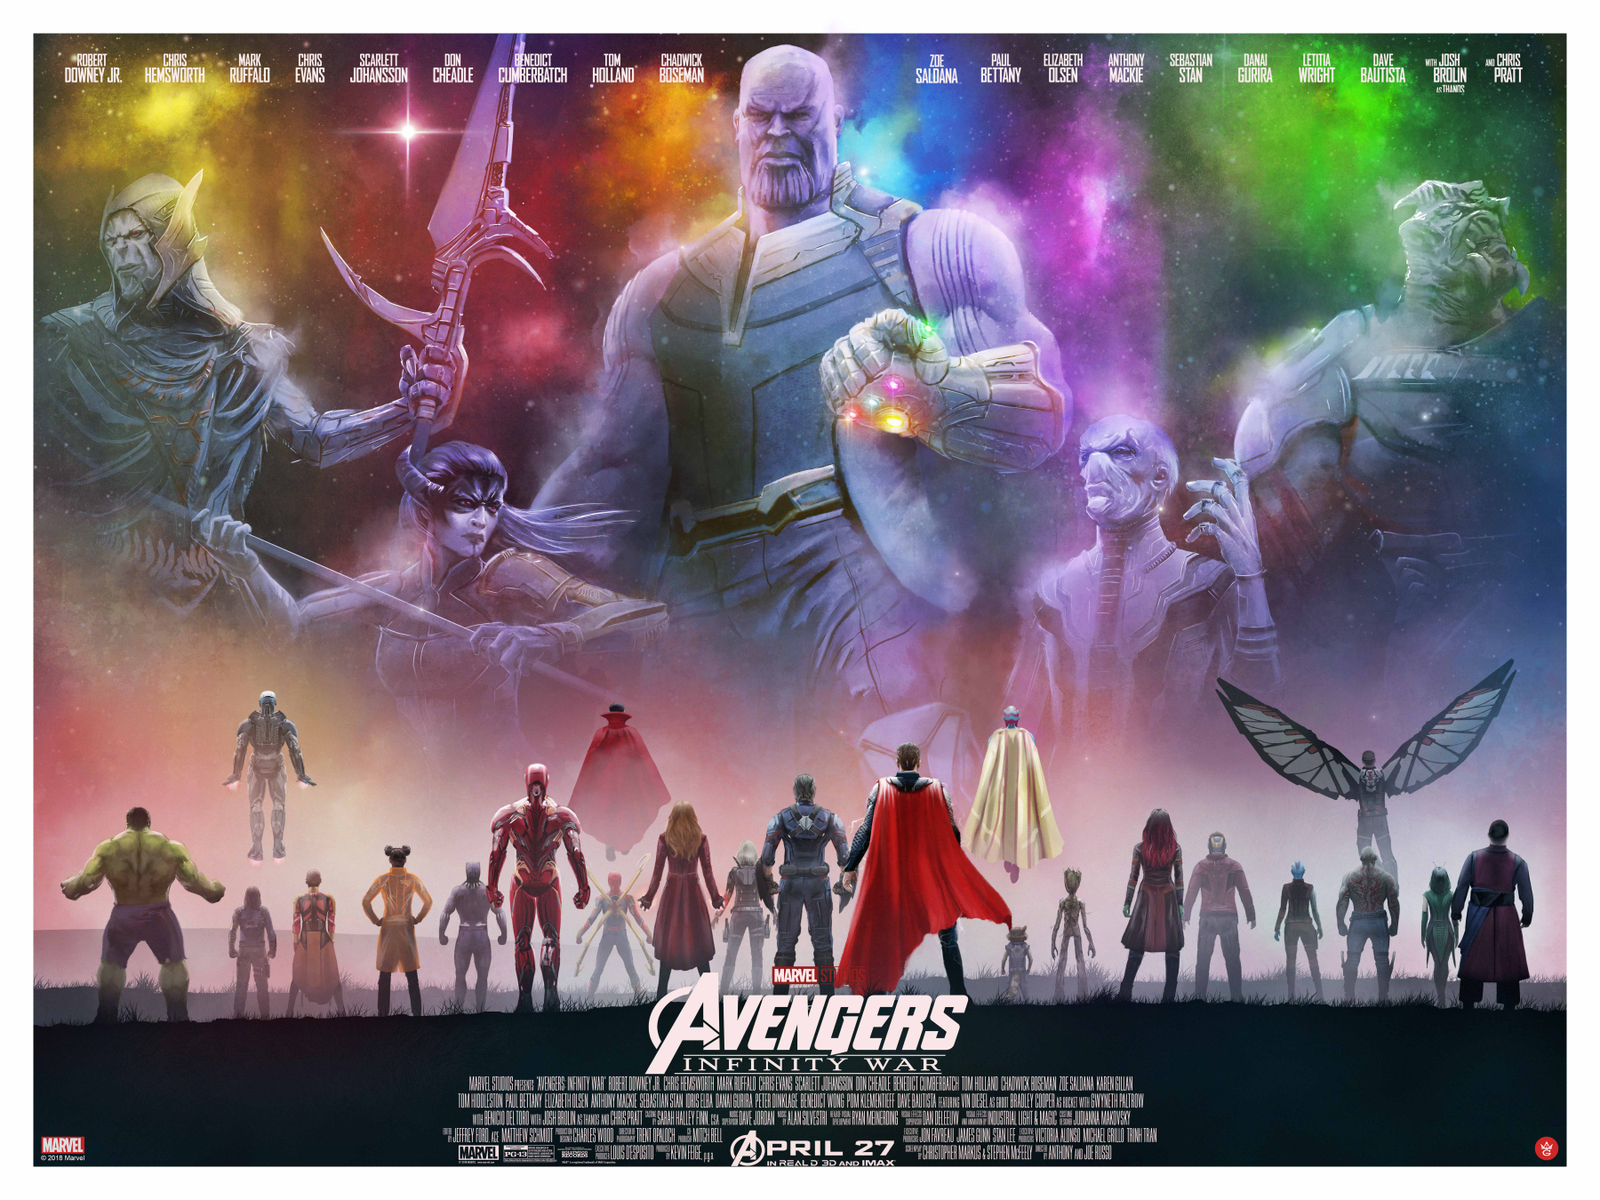 Avengers: Infinity War by Andy Fairhurst